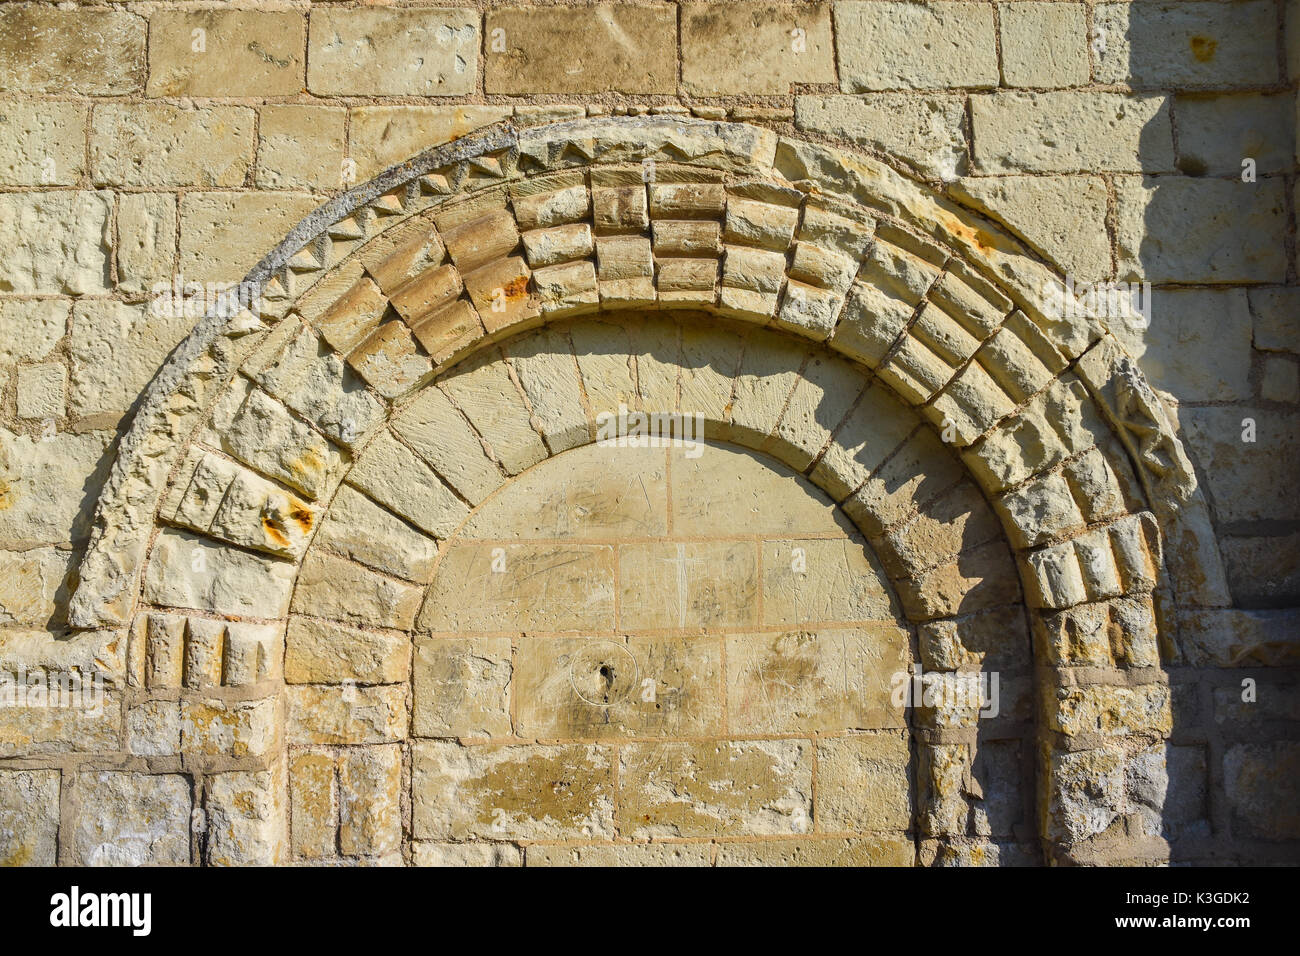 Old carved stone church doorway arch, Bossay-sur-Claise, France. - Stock Image